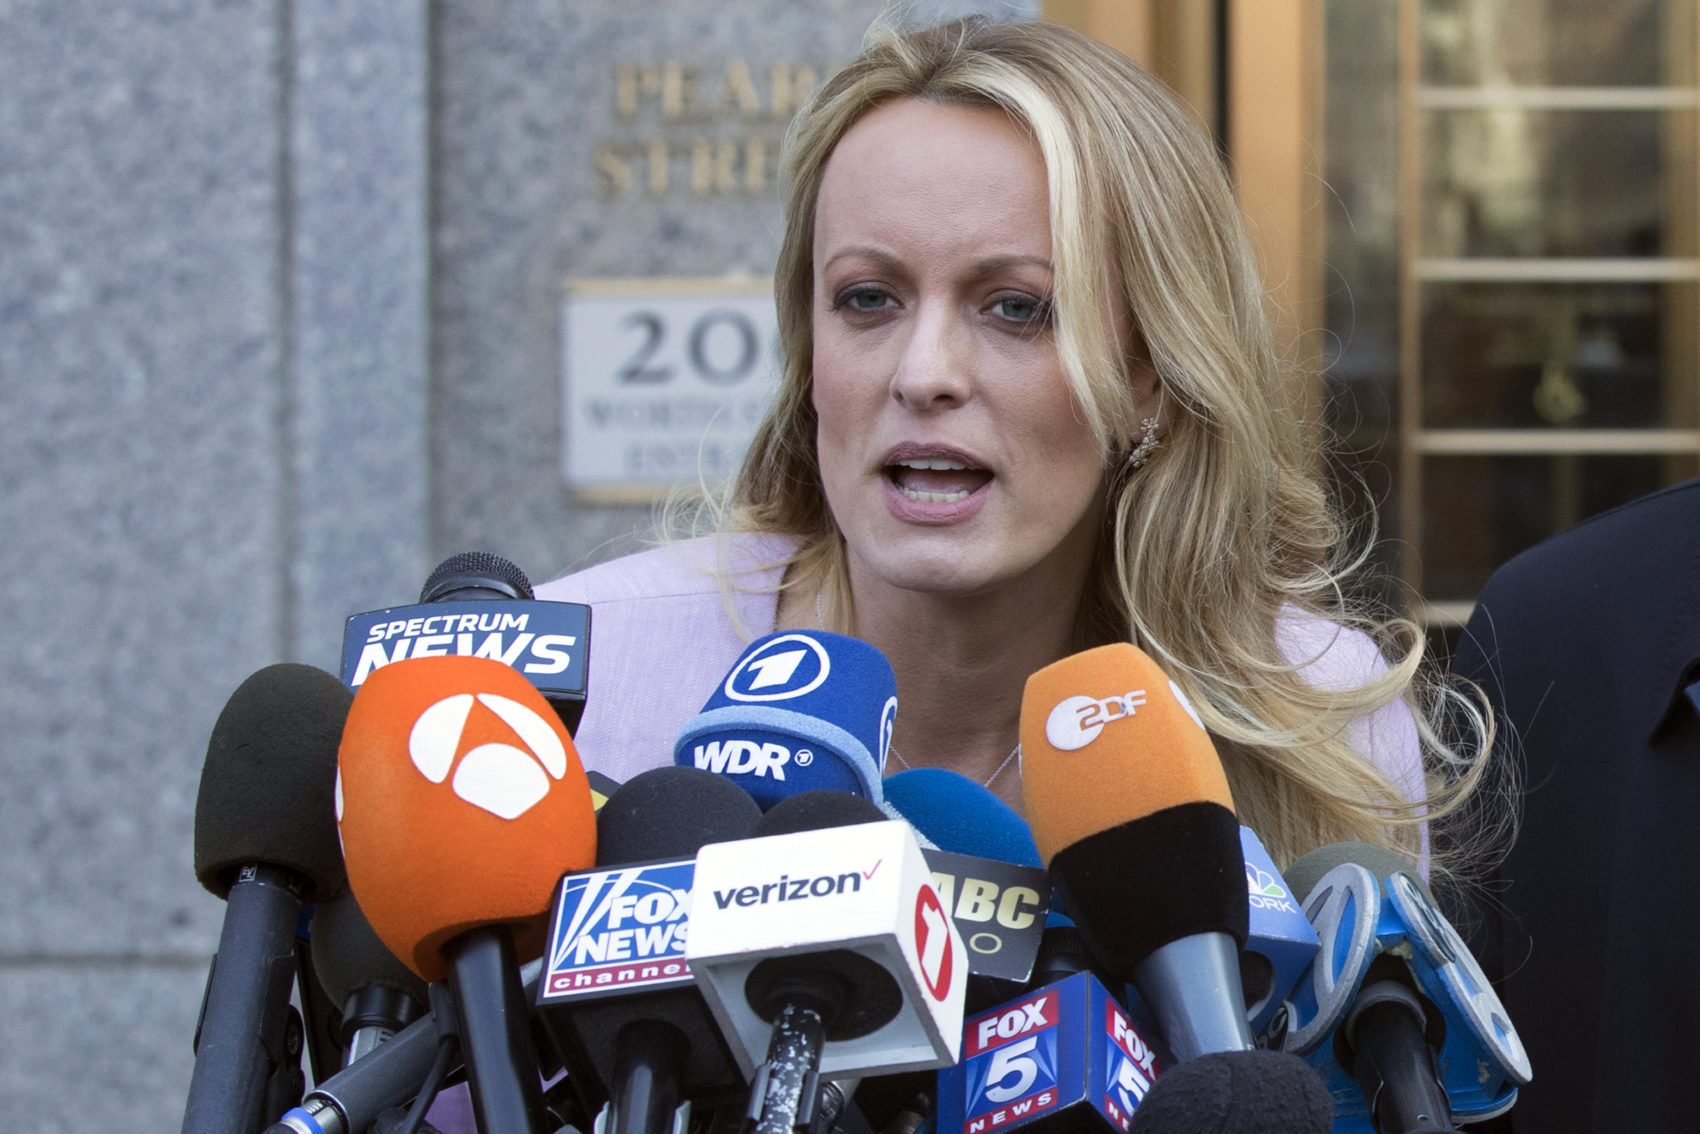 Adult film actress Stormy Daniels speaks outside federal court, Monday, April 16, 2018, in New York. (Mary Altaffer/AP)